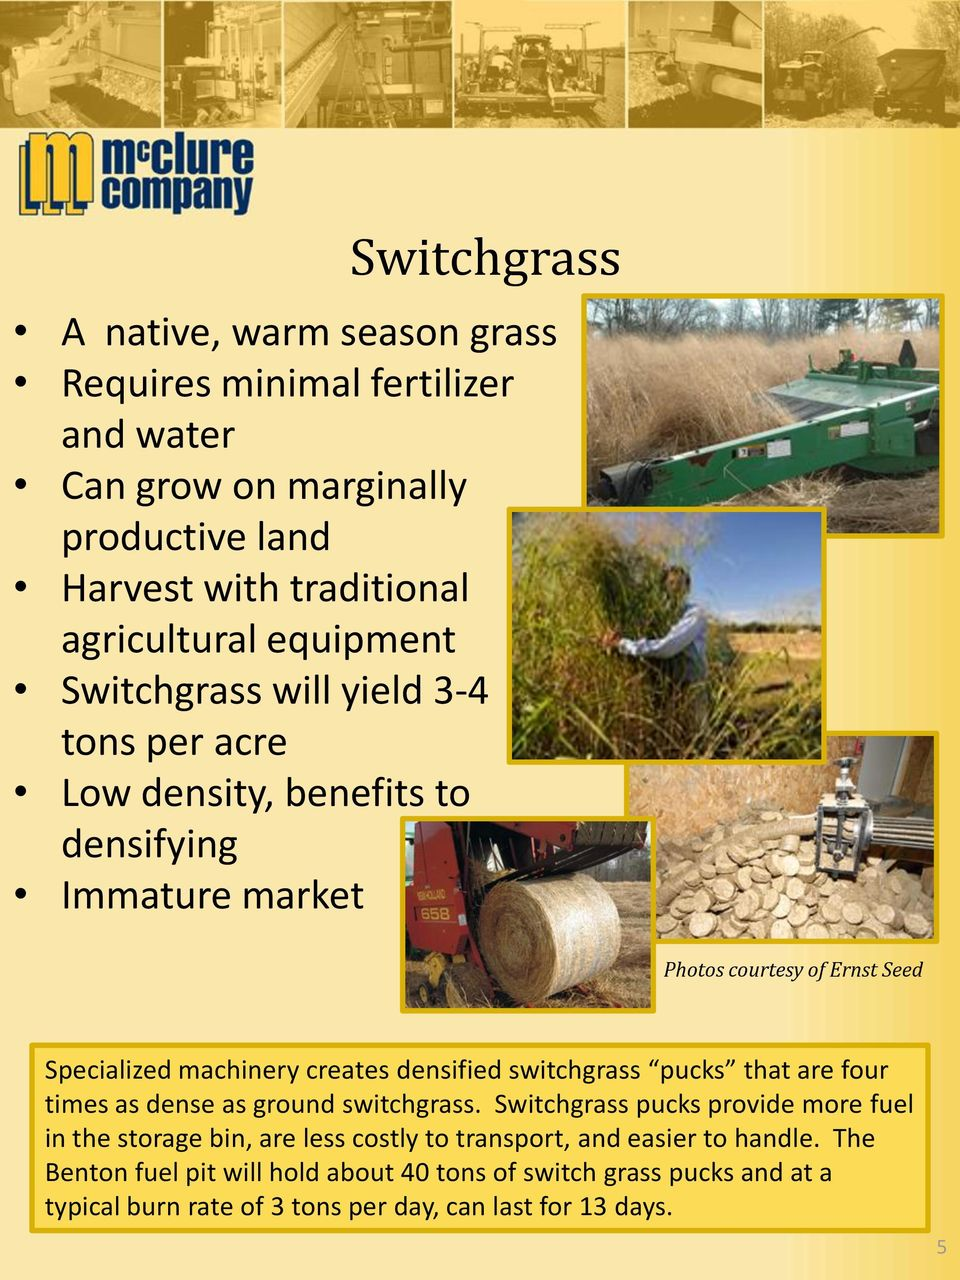 creates densified switchgrass pucks that are four times as dense as ground switchgrass.